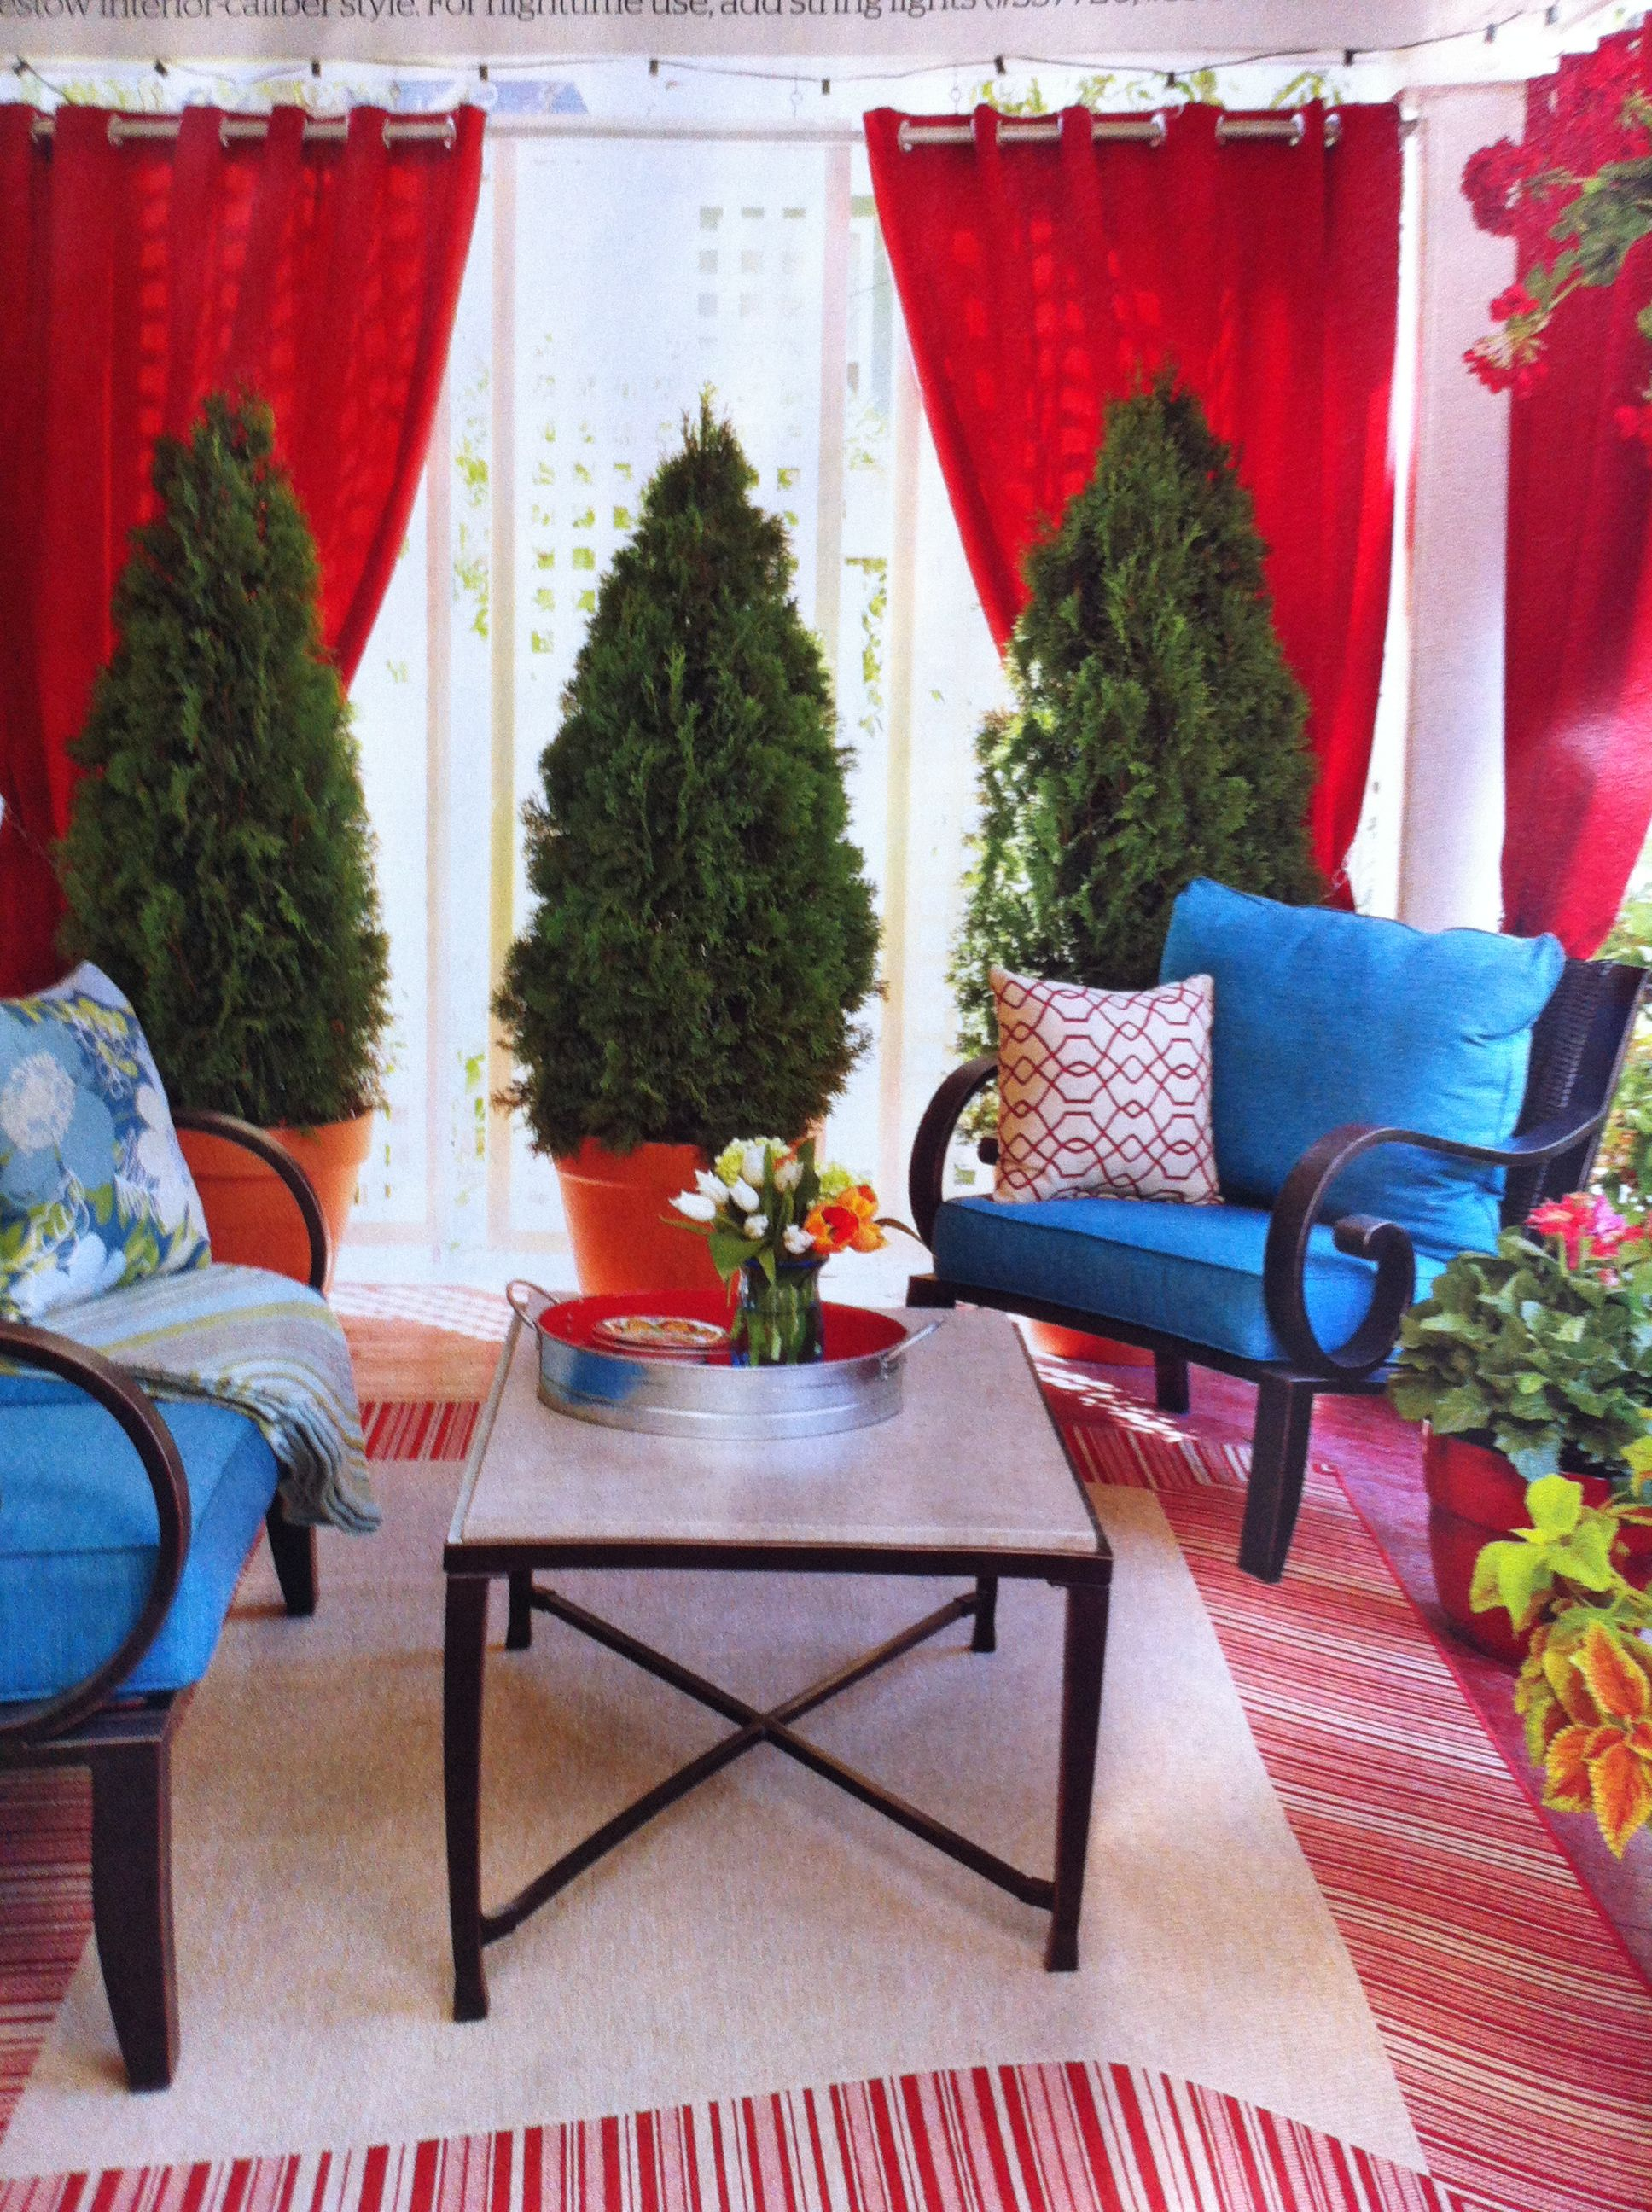 Front porch room with privacy lowes creative ideas